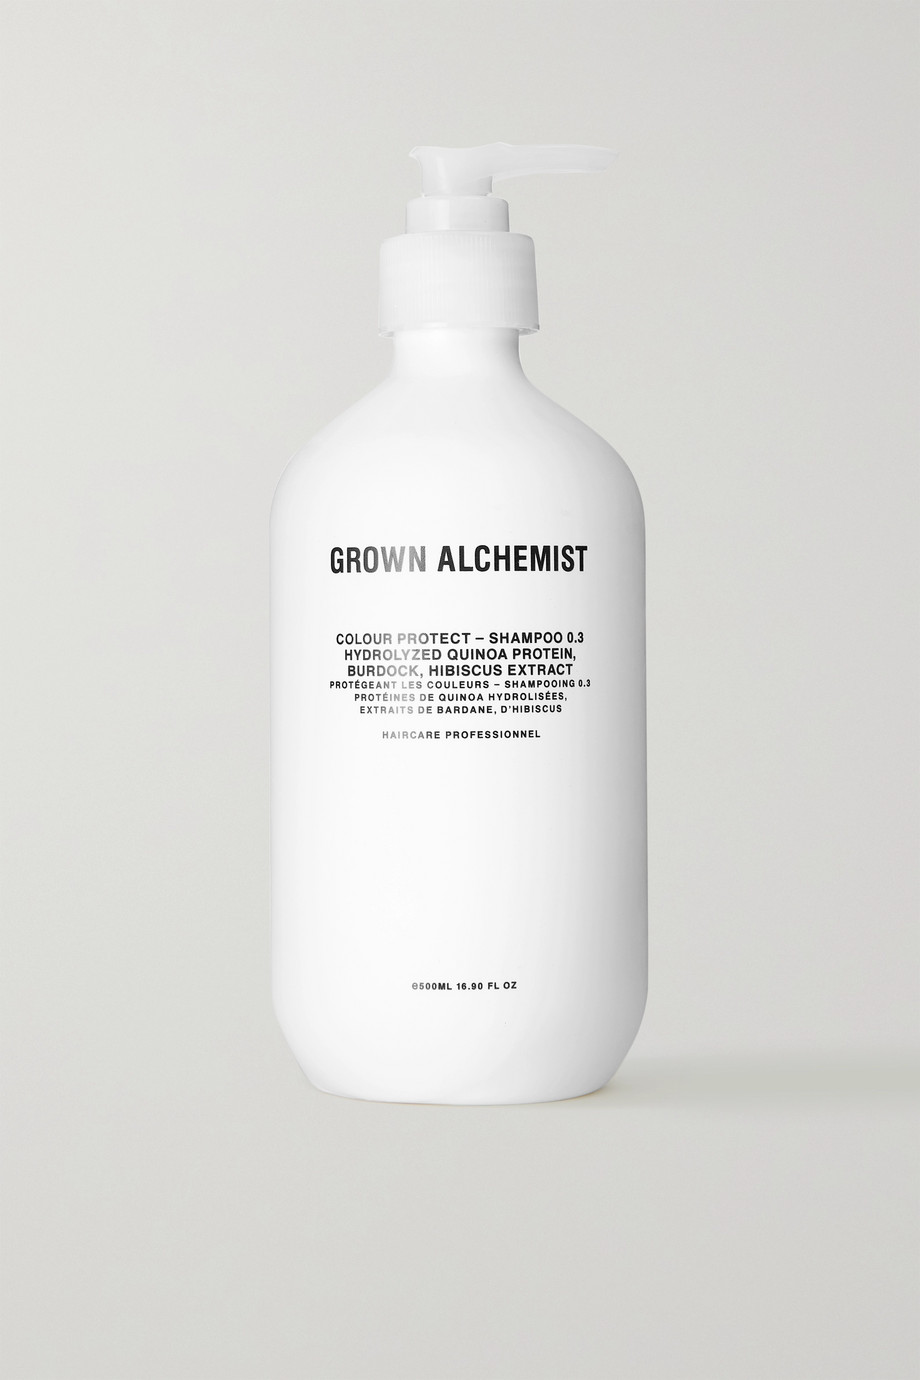 GROWN ALCHEMIST Colour Protect - Shampoo 0.3, 500ml